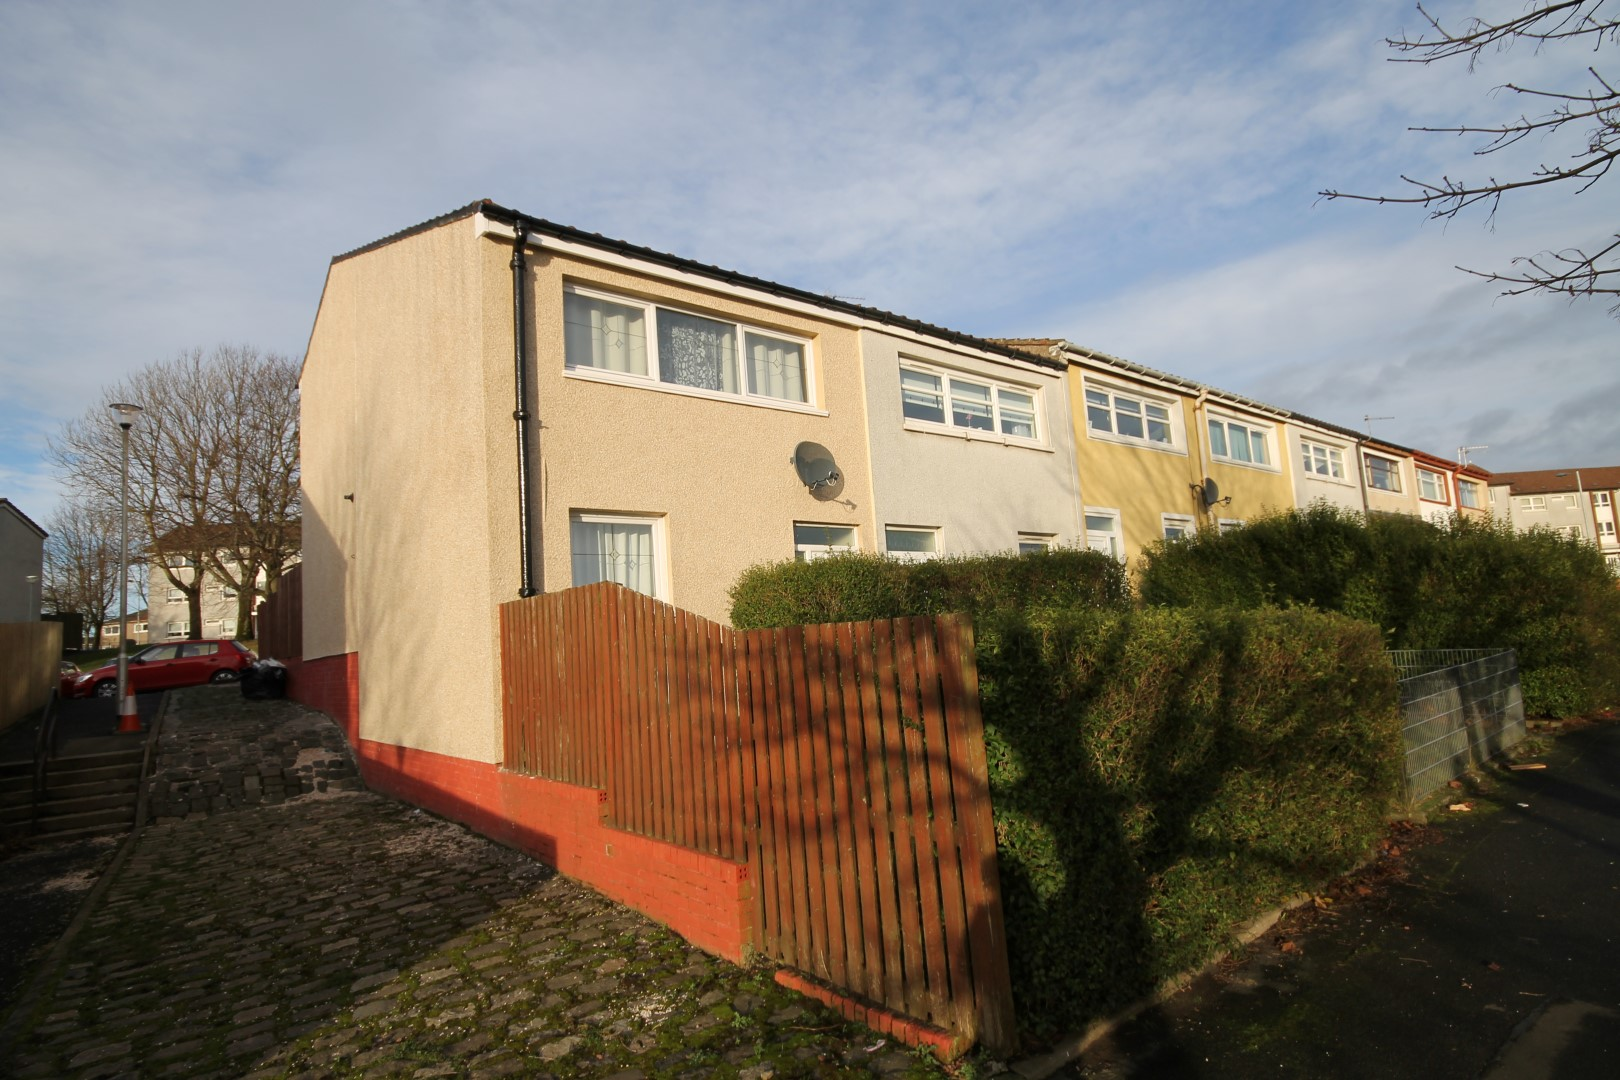 CRAIGEND – 3 Bedroom End Terrace